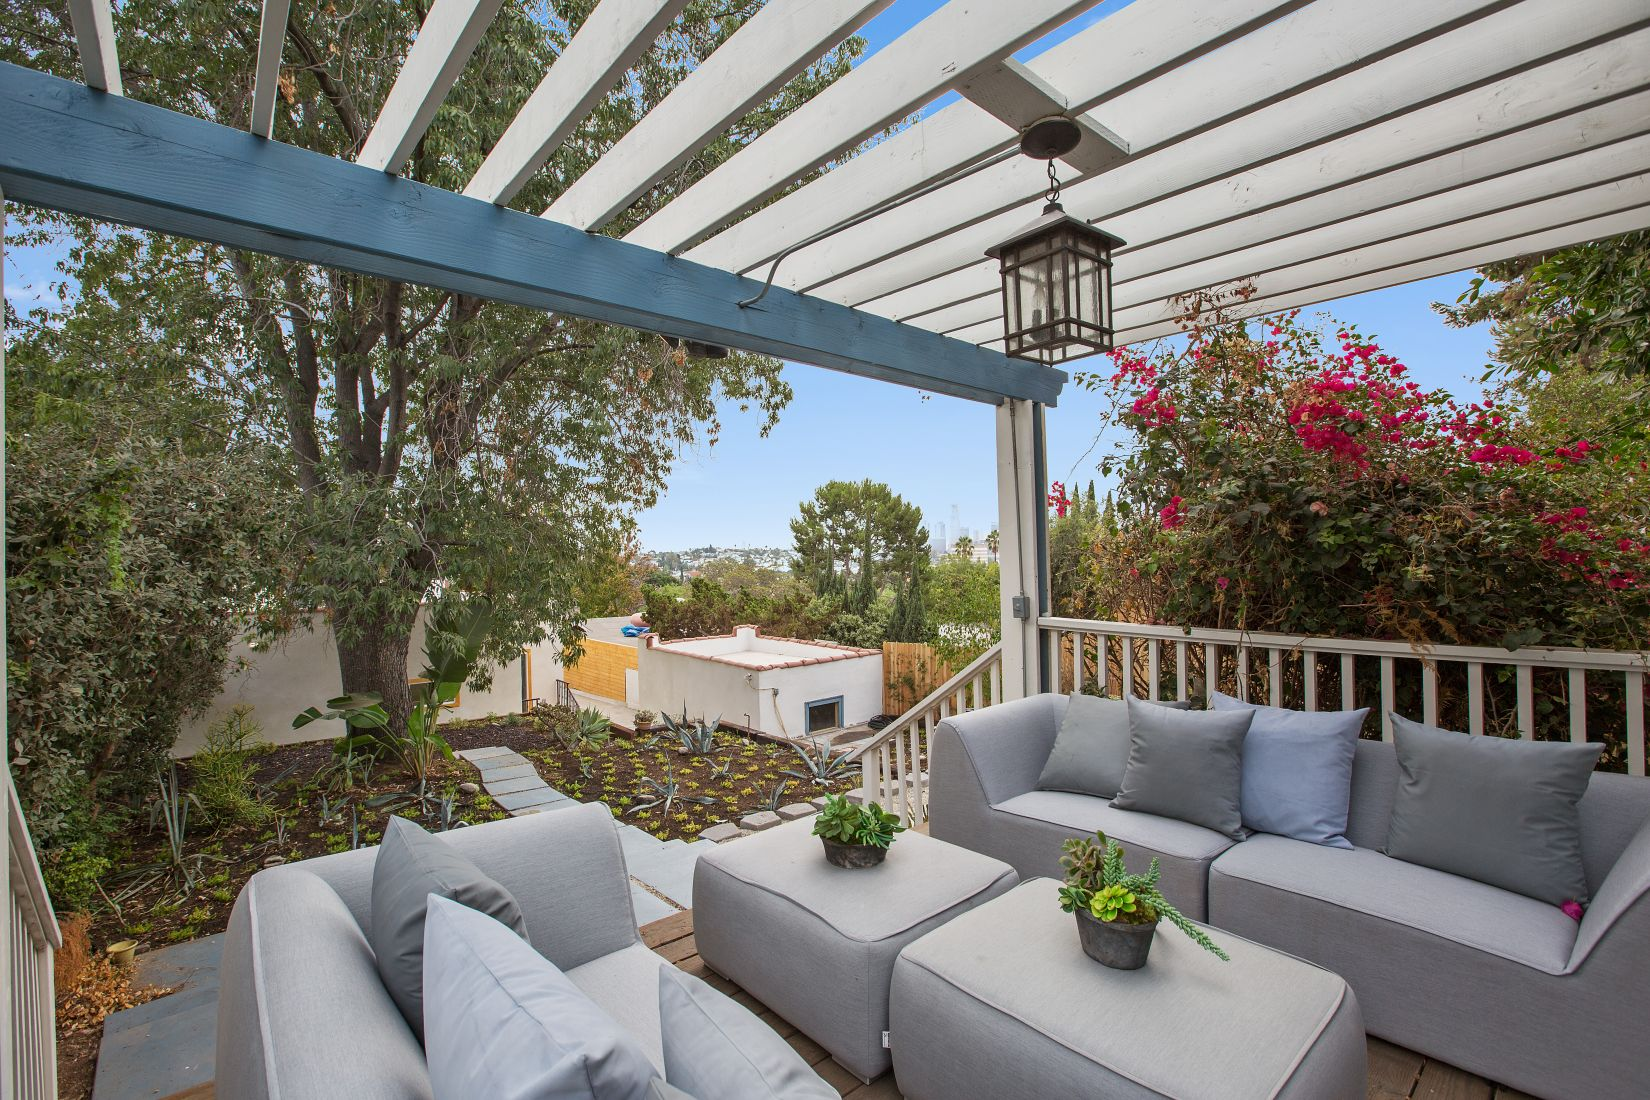 25patioWaterlooSilverLake.jpg